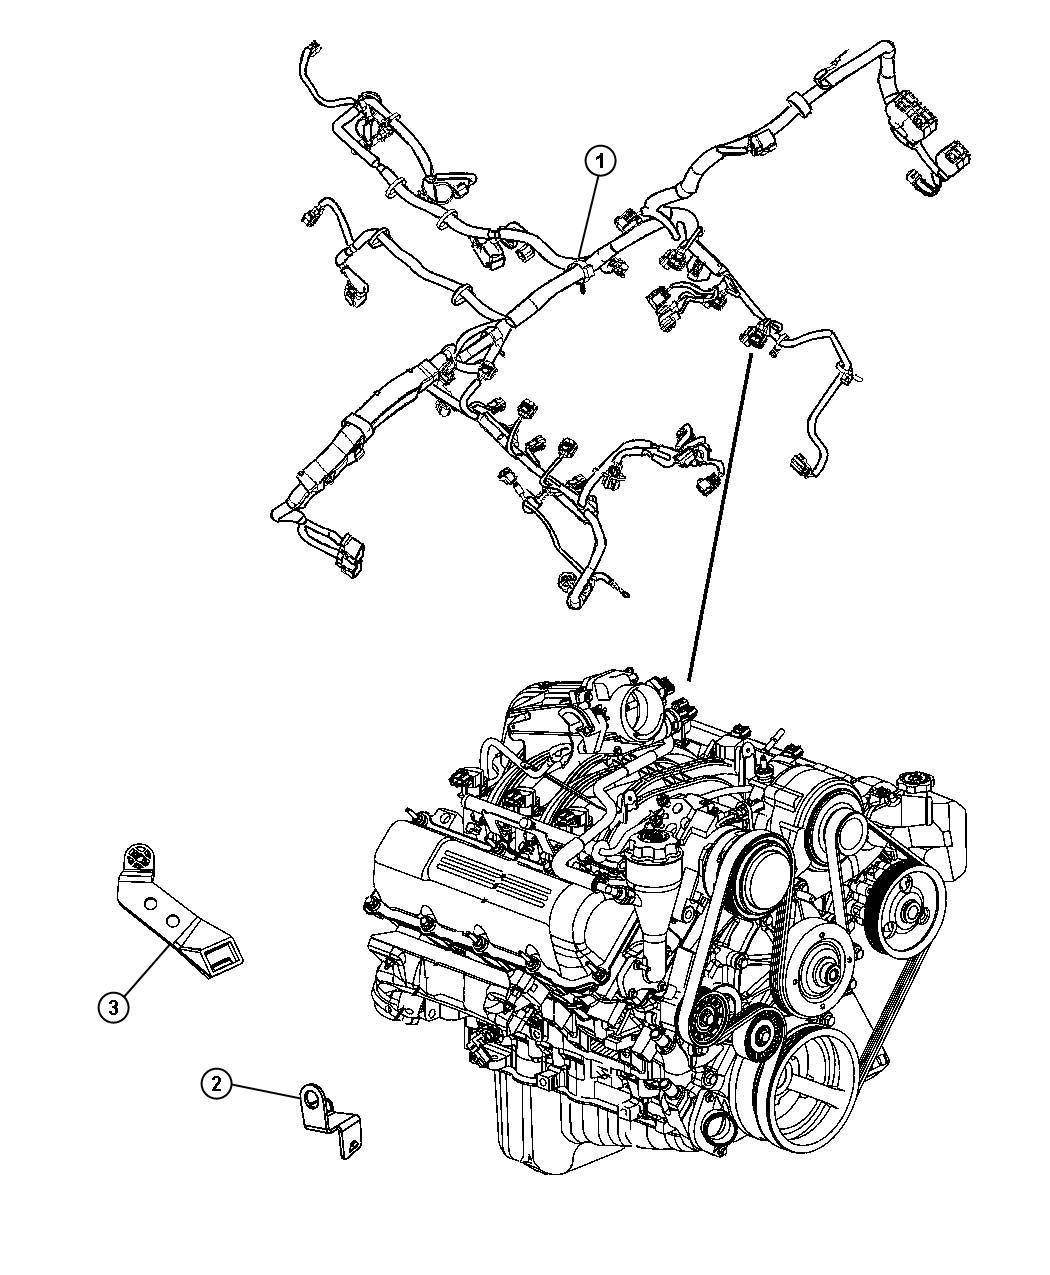 Wiring Harness Diagram 1990 Jeep Yj. . Wiring Diagram on